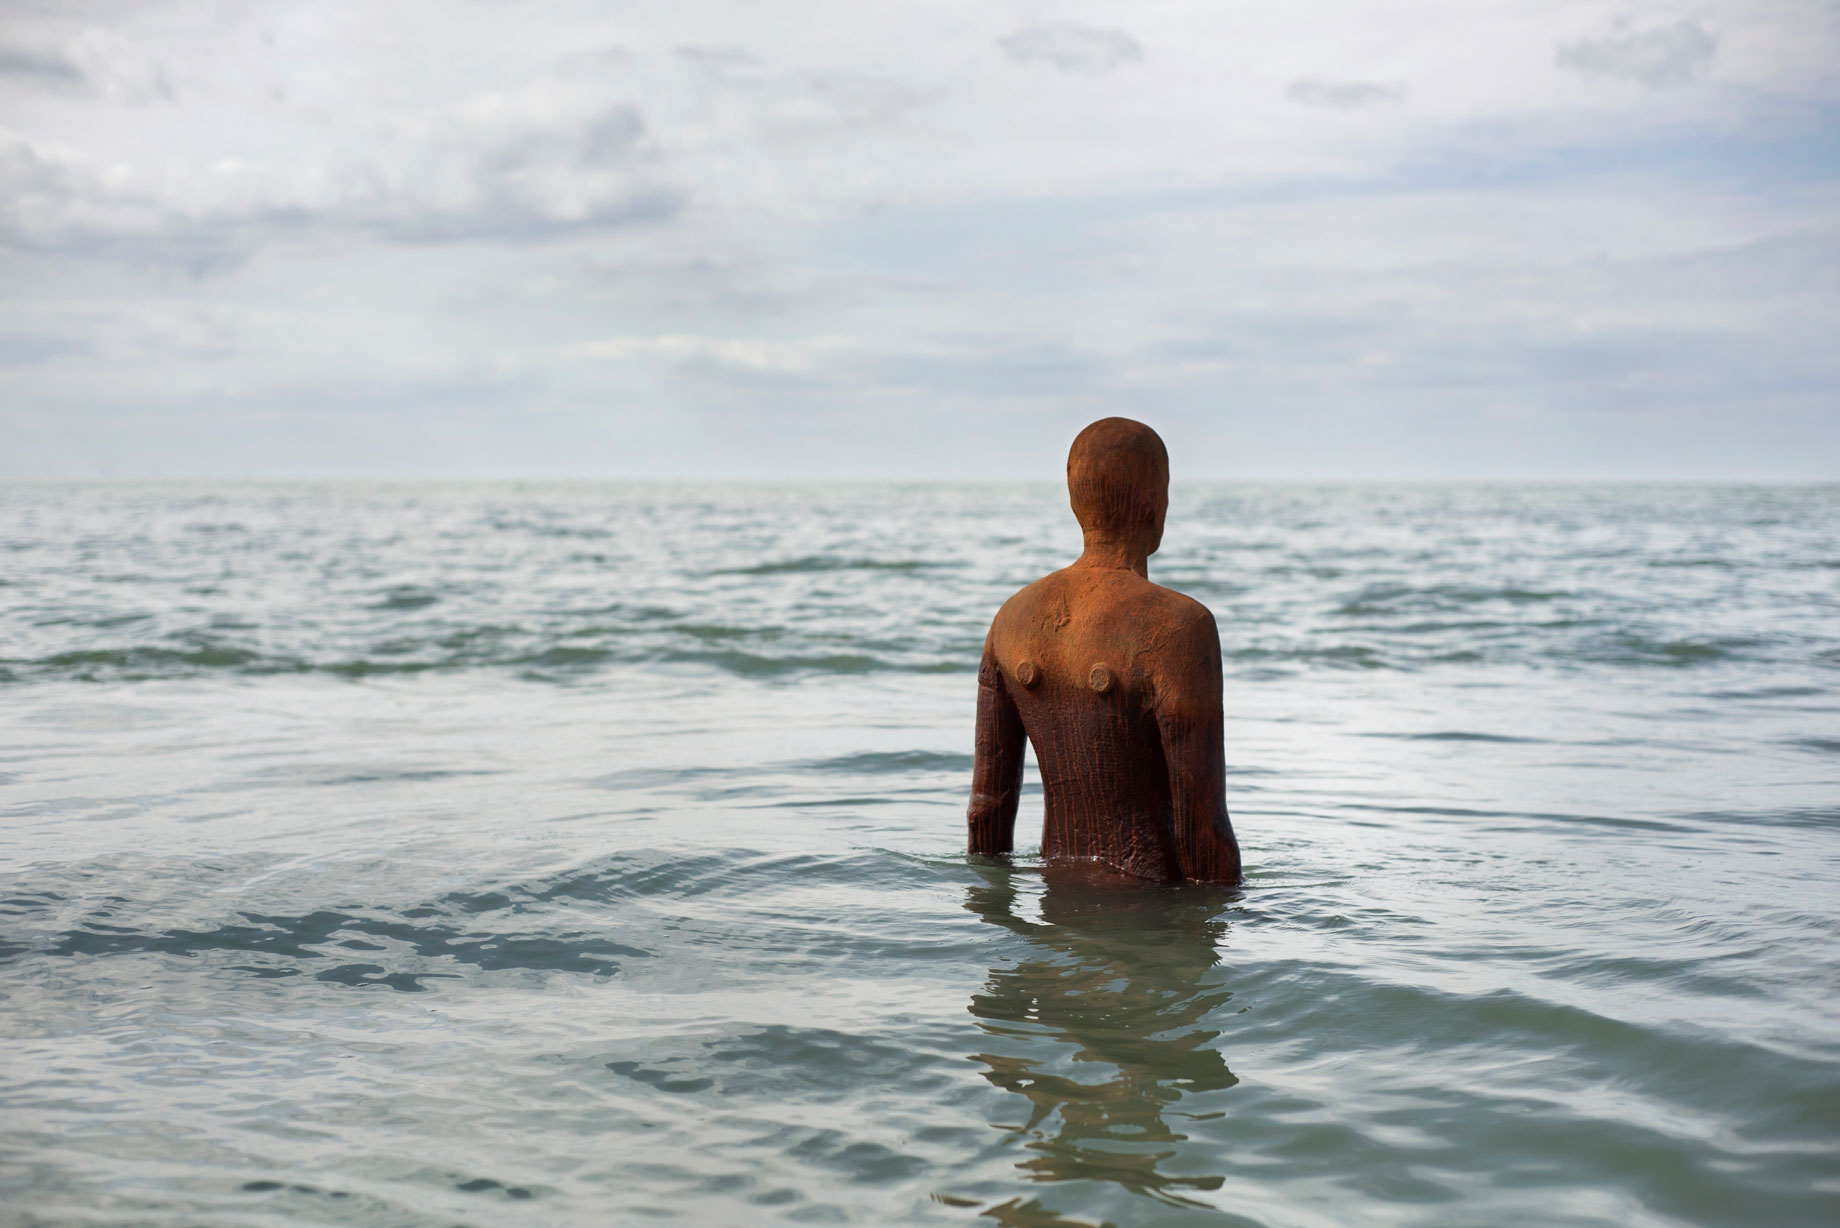 ANOTHER-TIME-Antony-Gormley-Margate---Thierry-Bal-(4).jpg